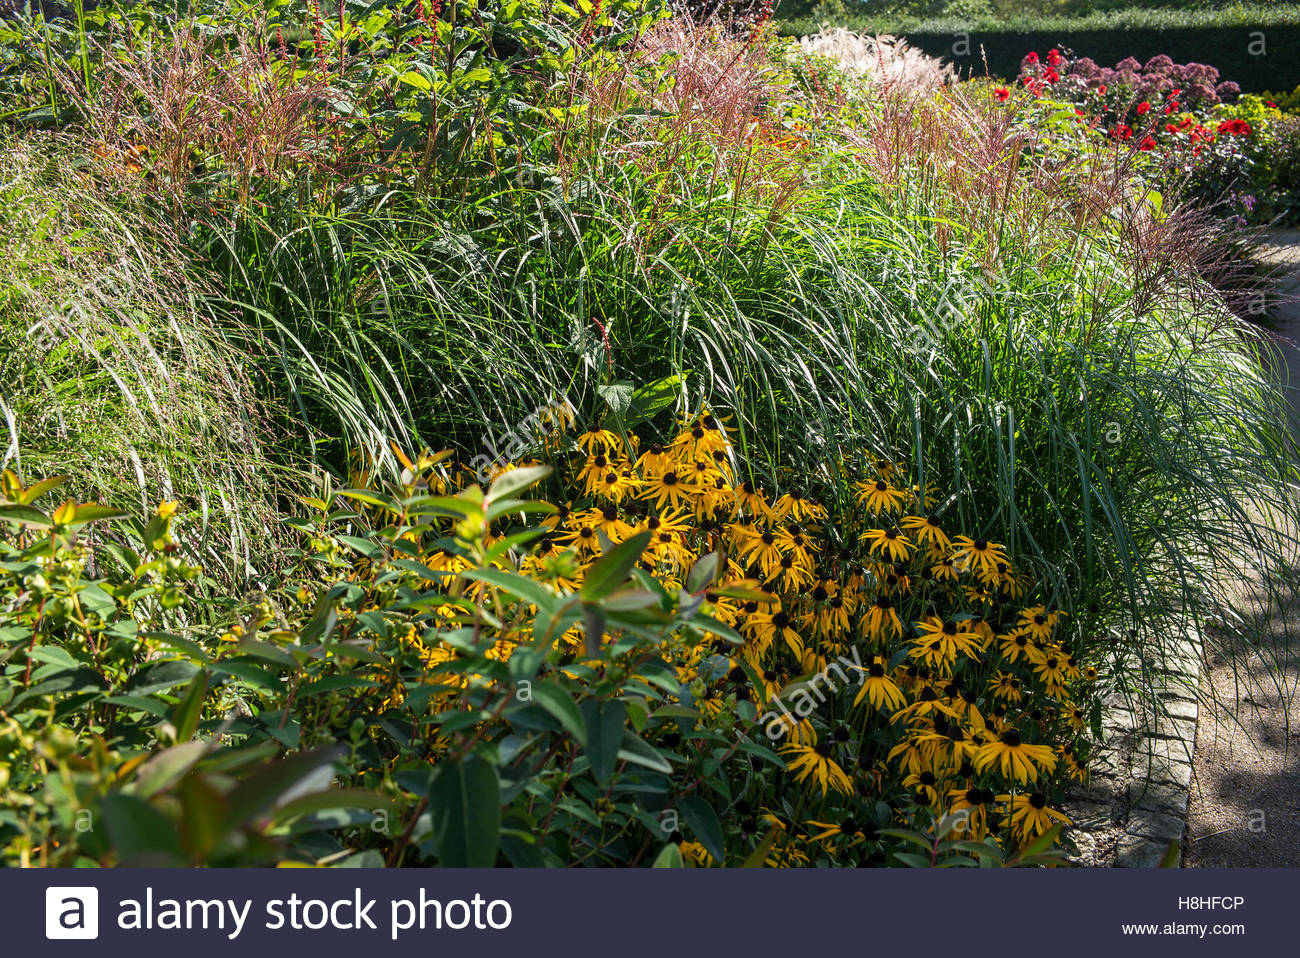 Planting Of Late Summer Flowering Perennials Grasses And Shrubs In